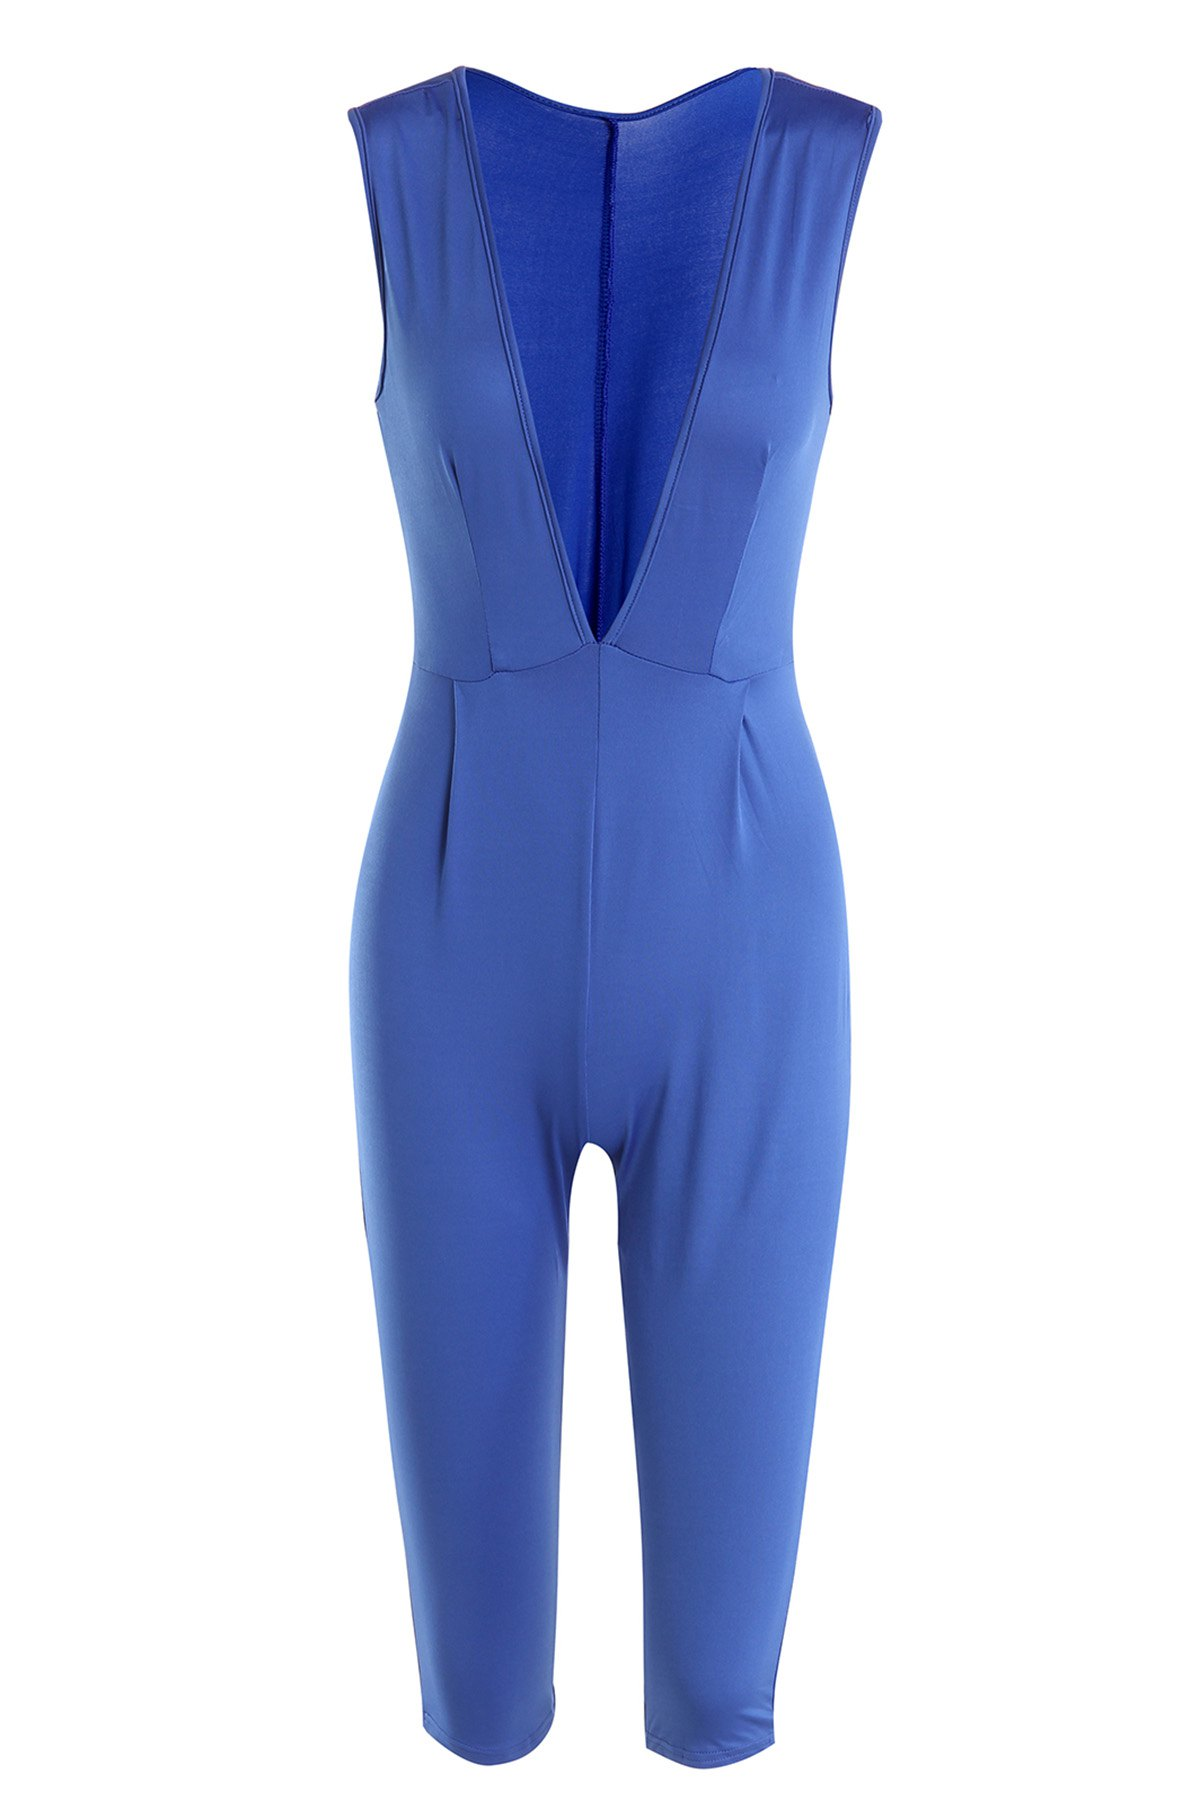 Stylish Sleeveless Plunging Neck Solid Color Women's Jumpsuit - BLUE M